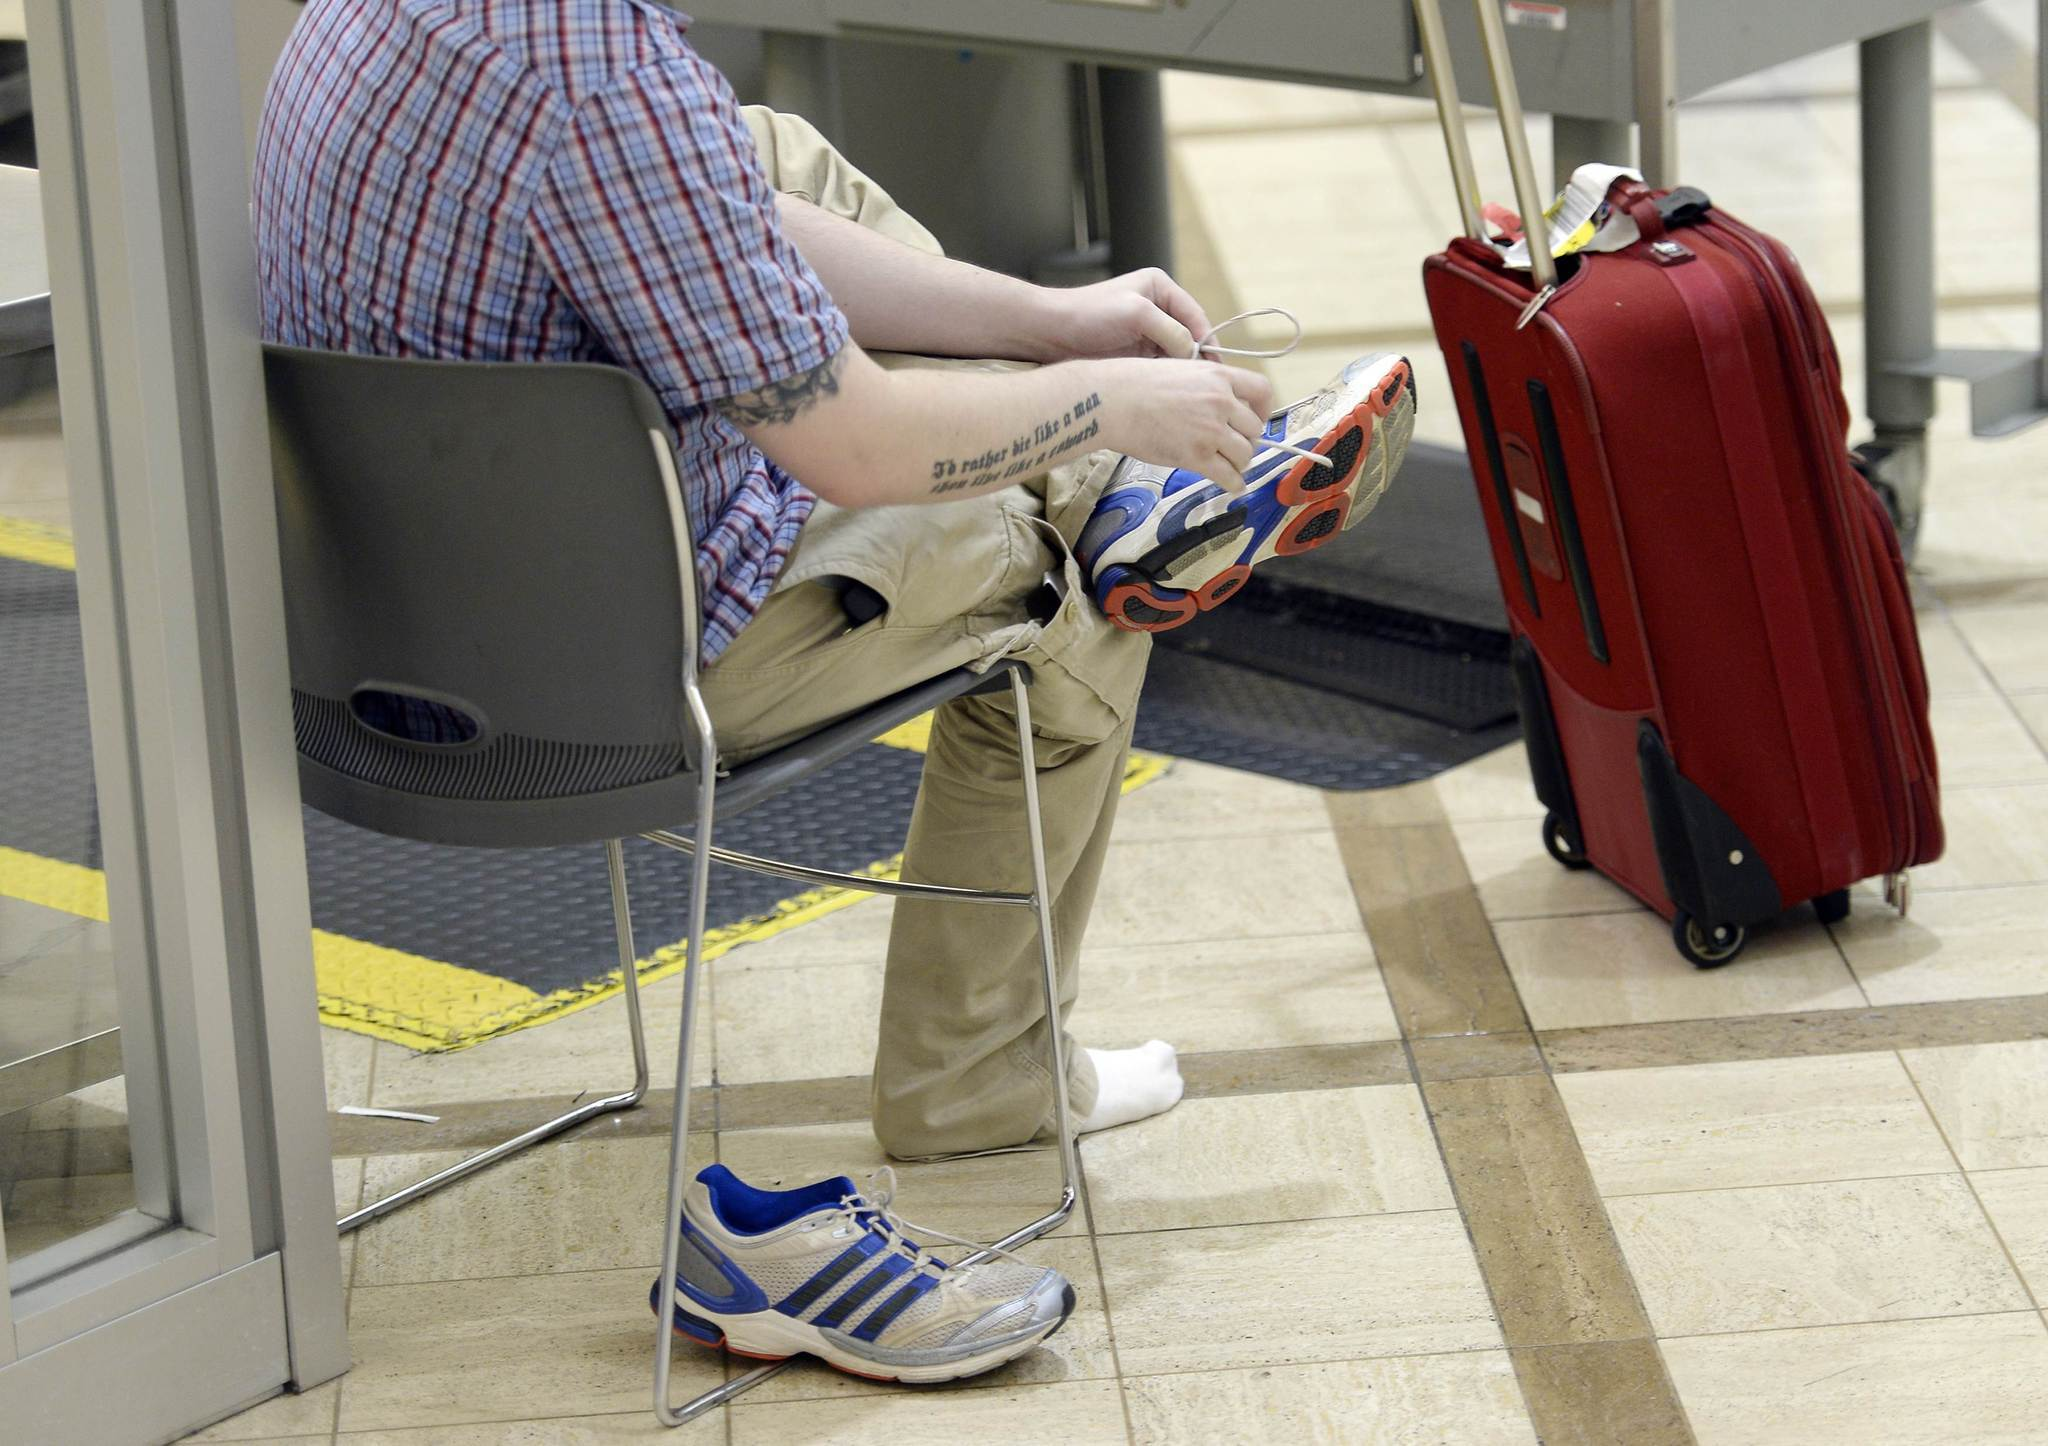 An airline passenger puts on his shoes after passing through TSA security before boarding his flight at Los Angeles International Airport in California on February 20, 2014.